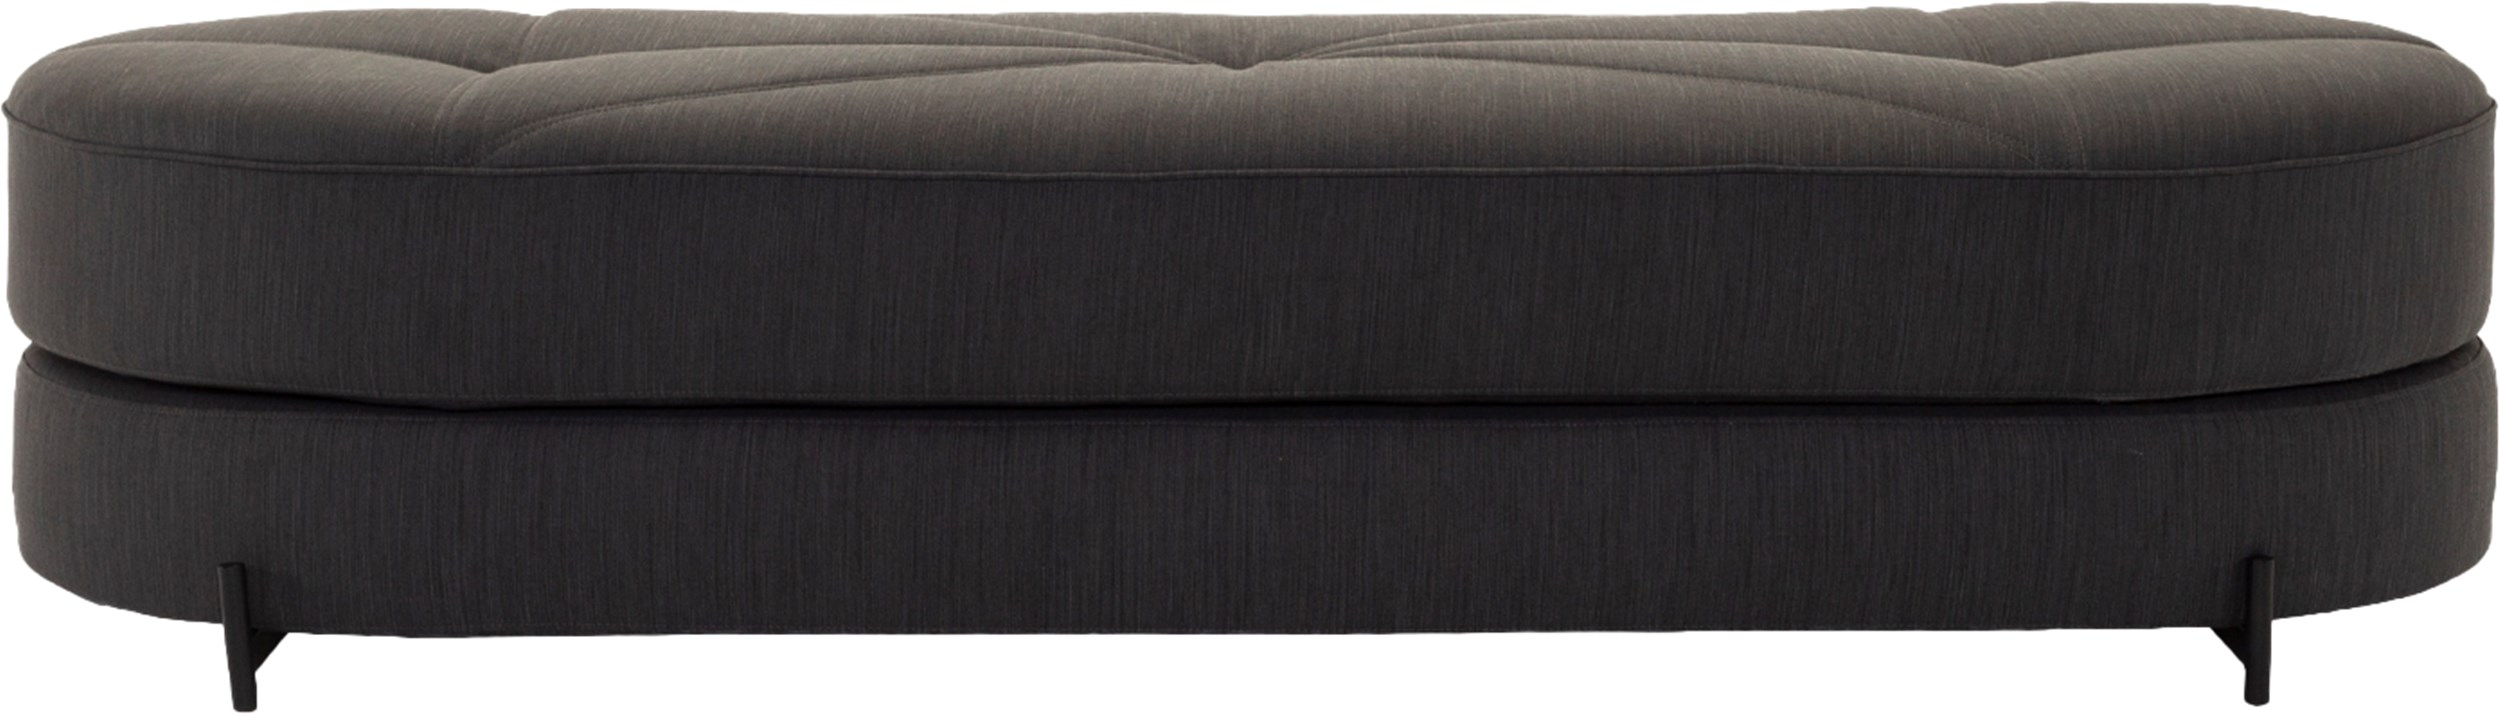 Innovation Living - Wilfred Sovesofa - Elegance 509 Anthracite Grey stof, pocketspring madras og ben i sort metal